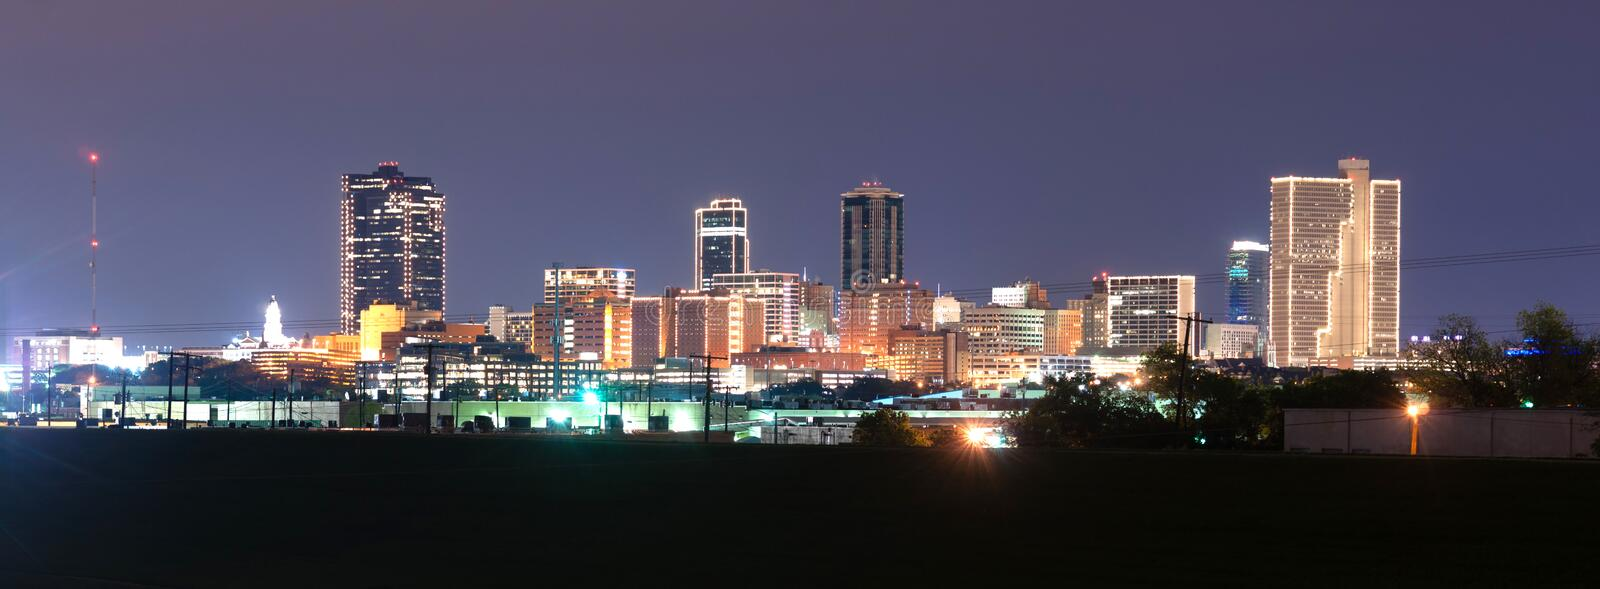 Fort Worth Texas Downtown Skyline Trinity River a tarda notte immagini stock